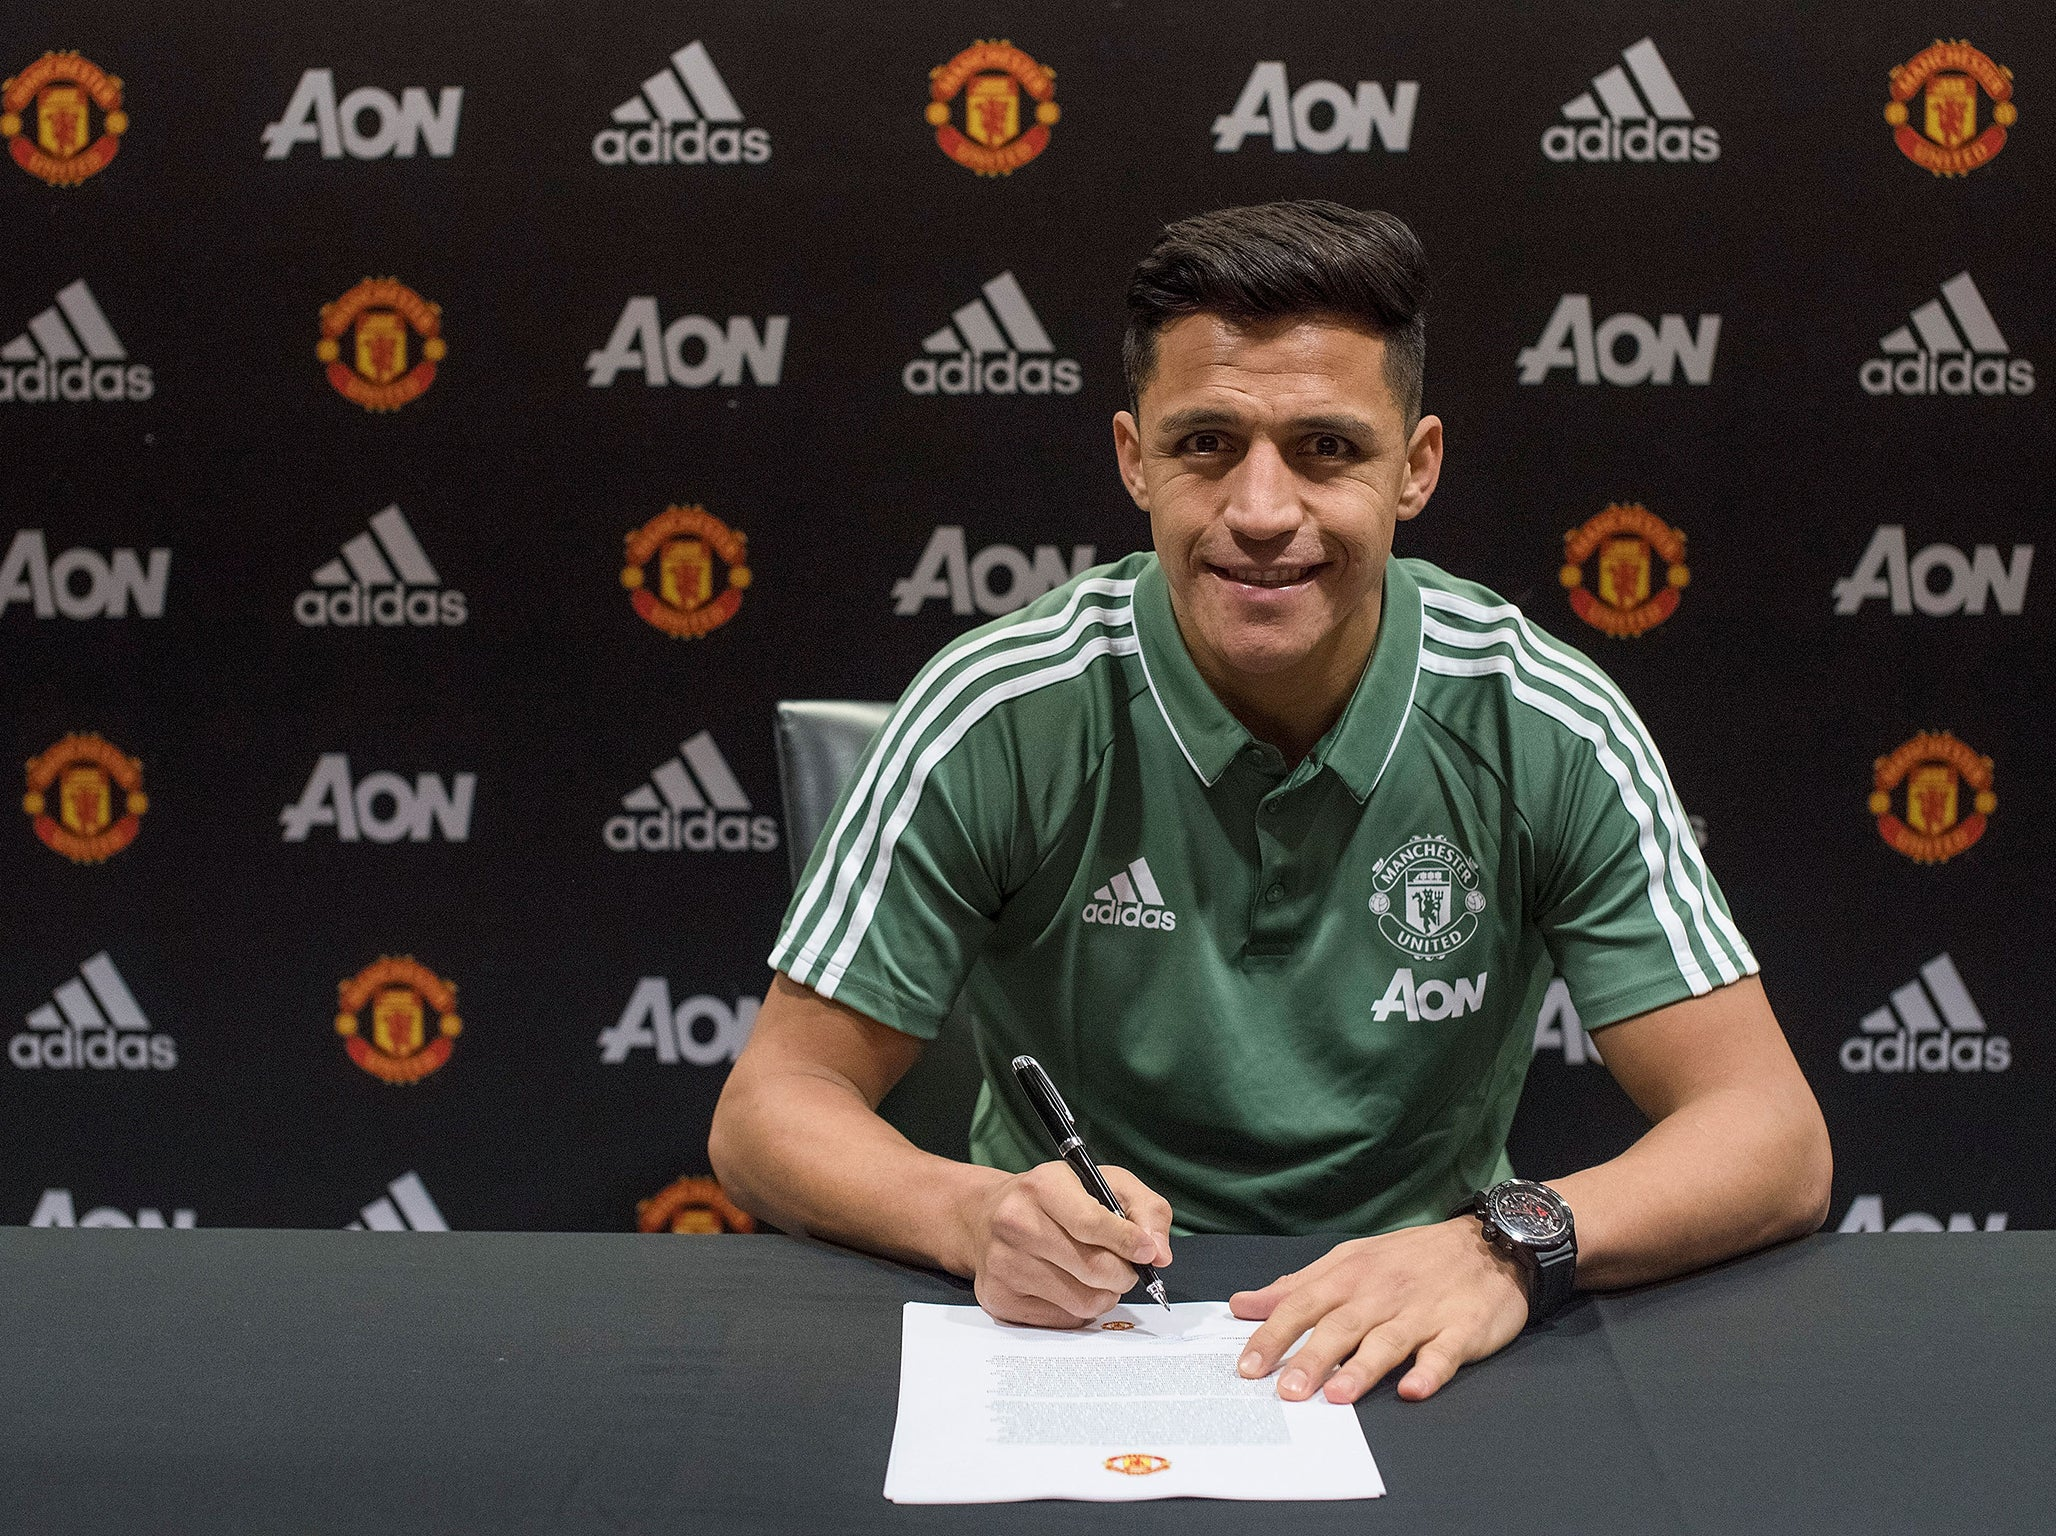 Alexis sanchez reveals why he quit arsenal for manchester united alexis sanchez reveals why he quit arsenal for manchester united in first interview since transfer the independent stopboris Images